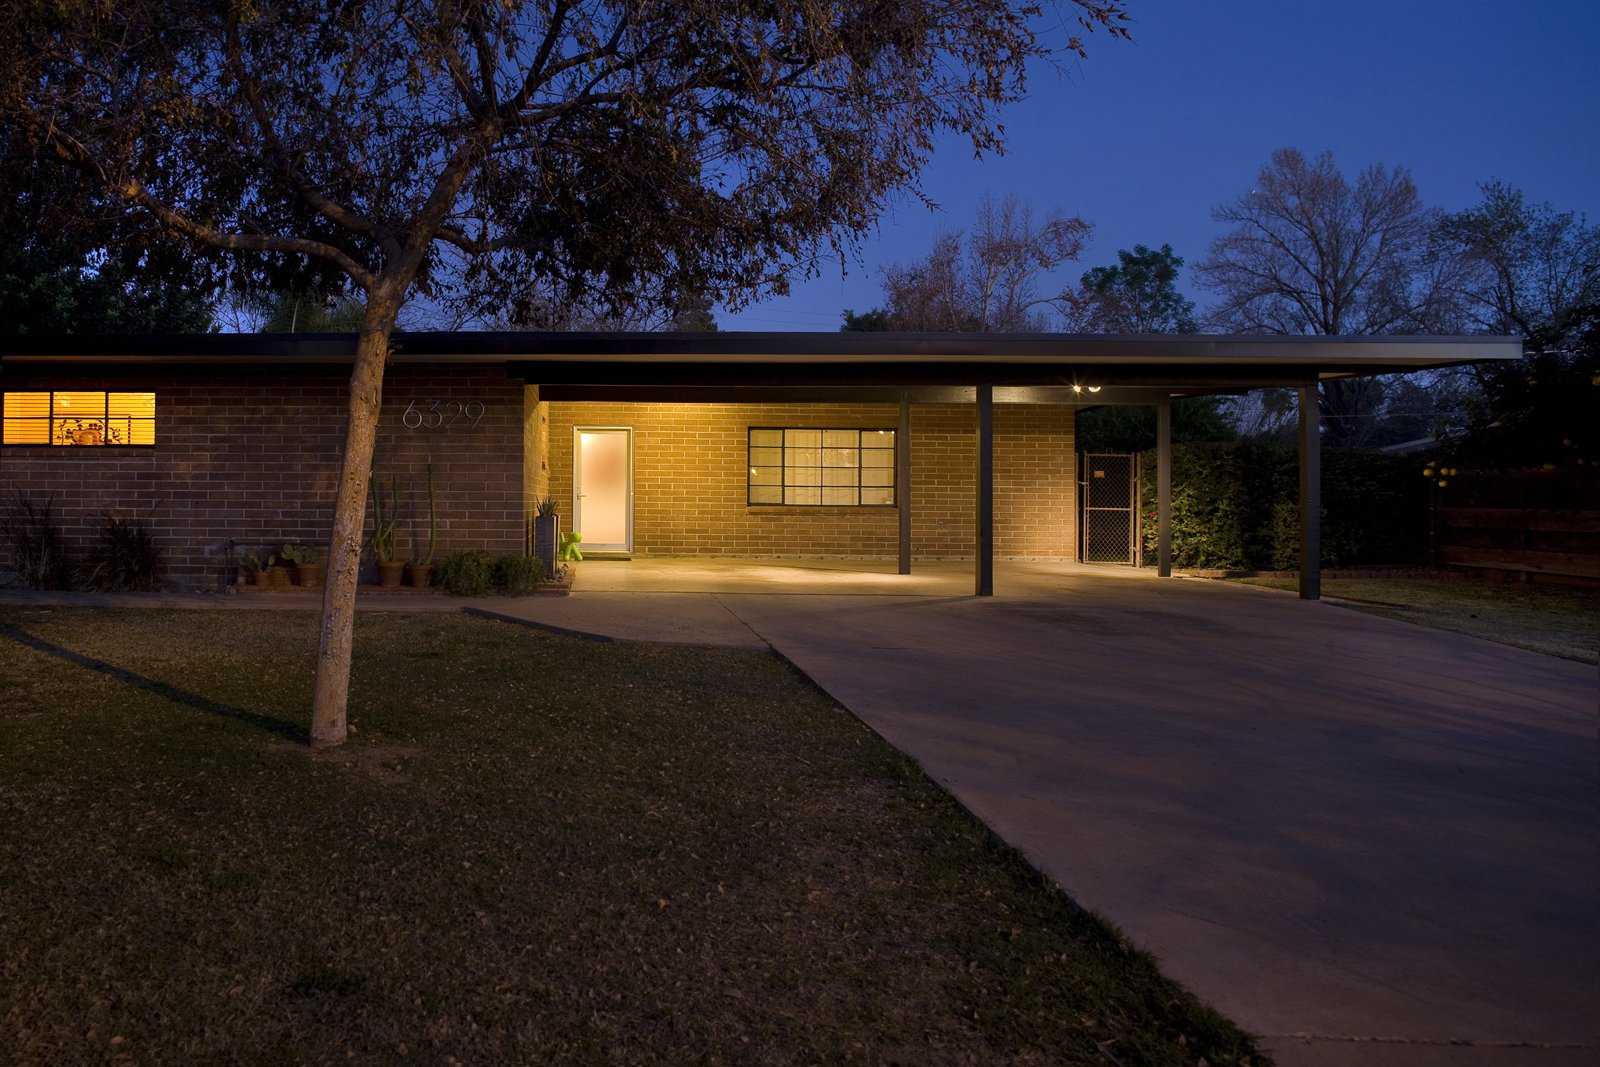 Photo 2 of 2 in Houses We Love: People's Choice